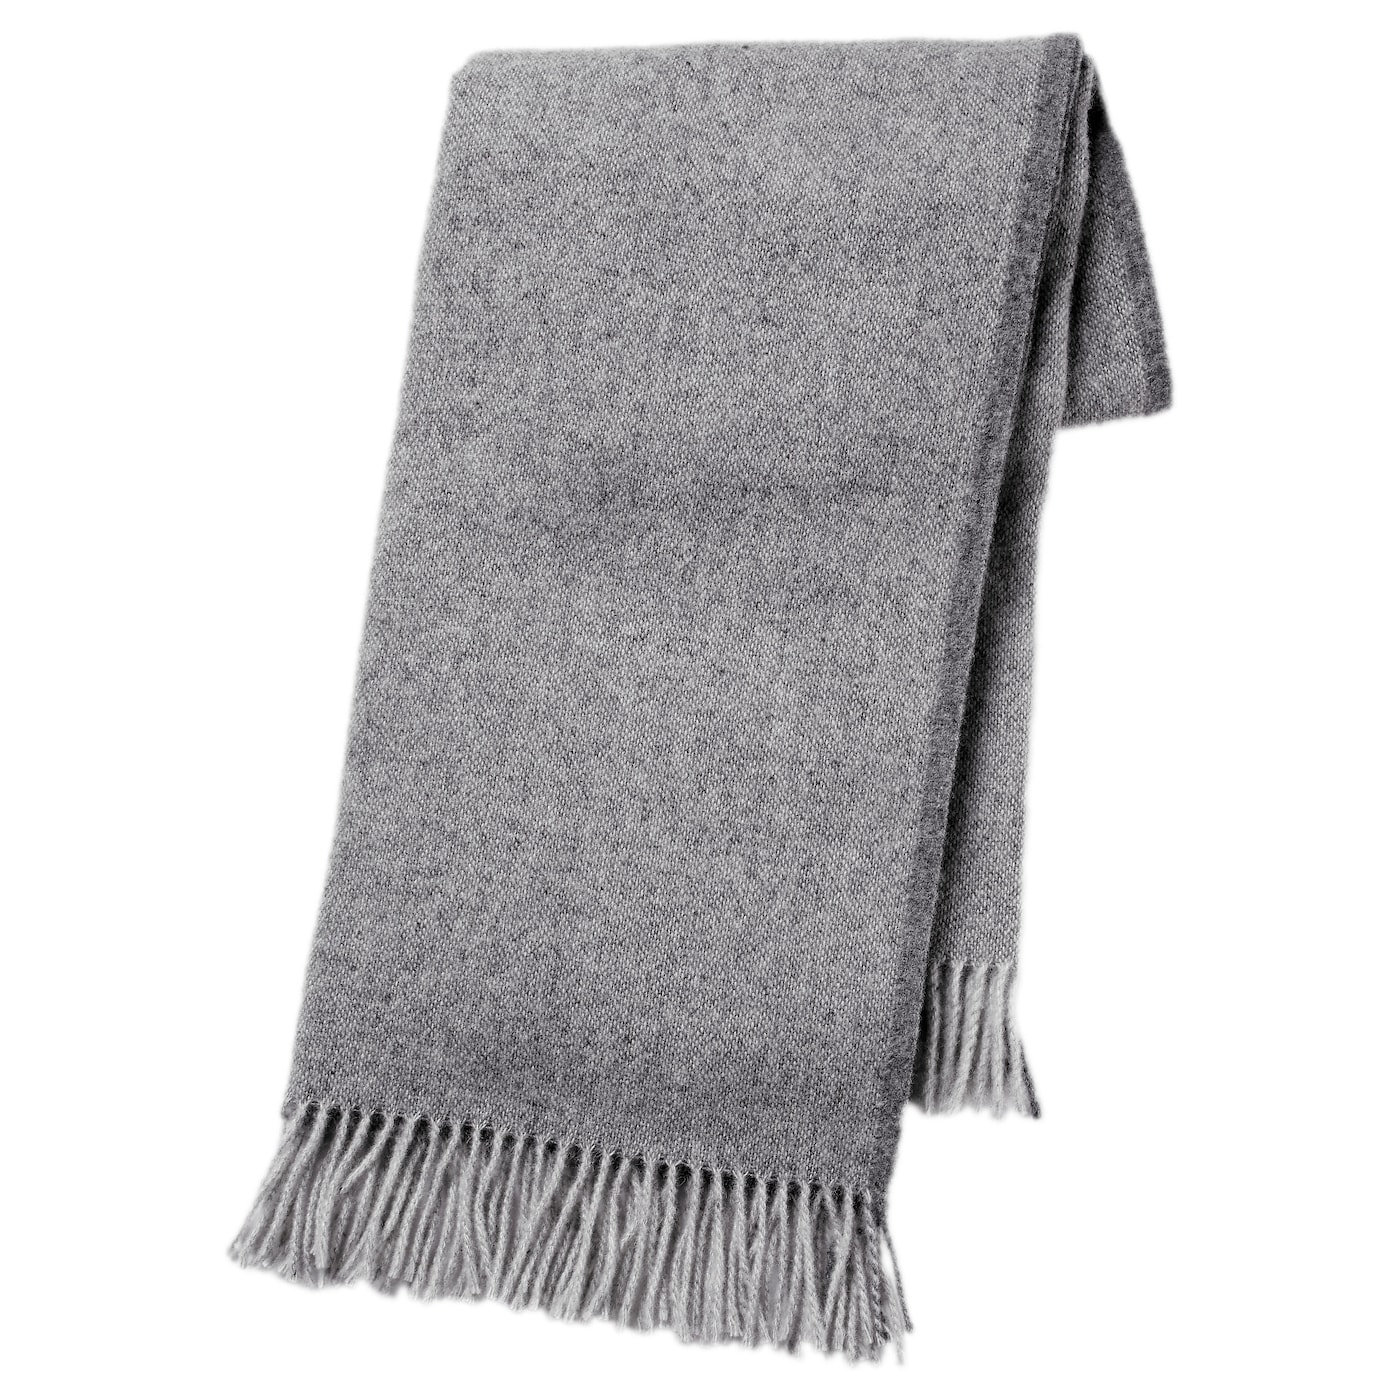 IKEA MOALIE throw